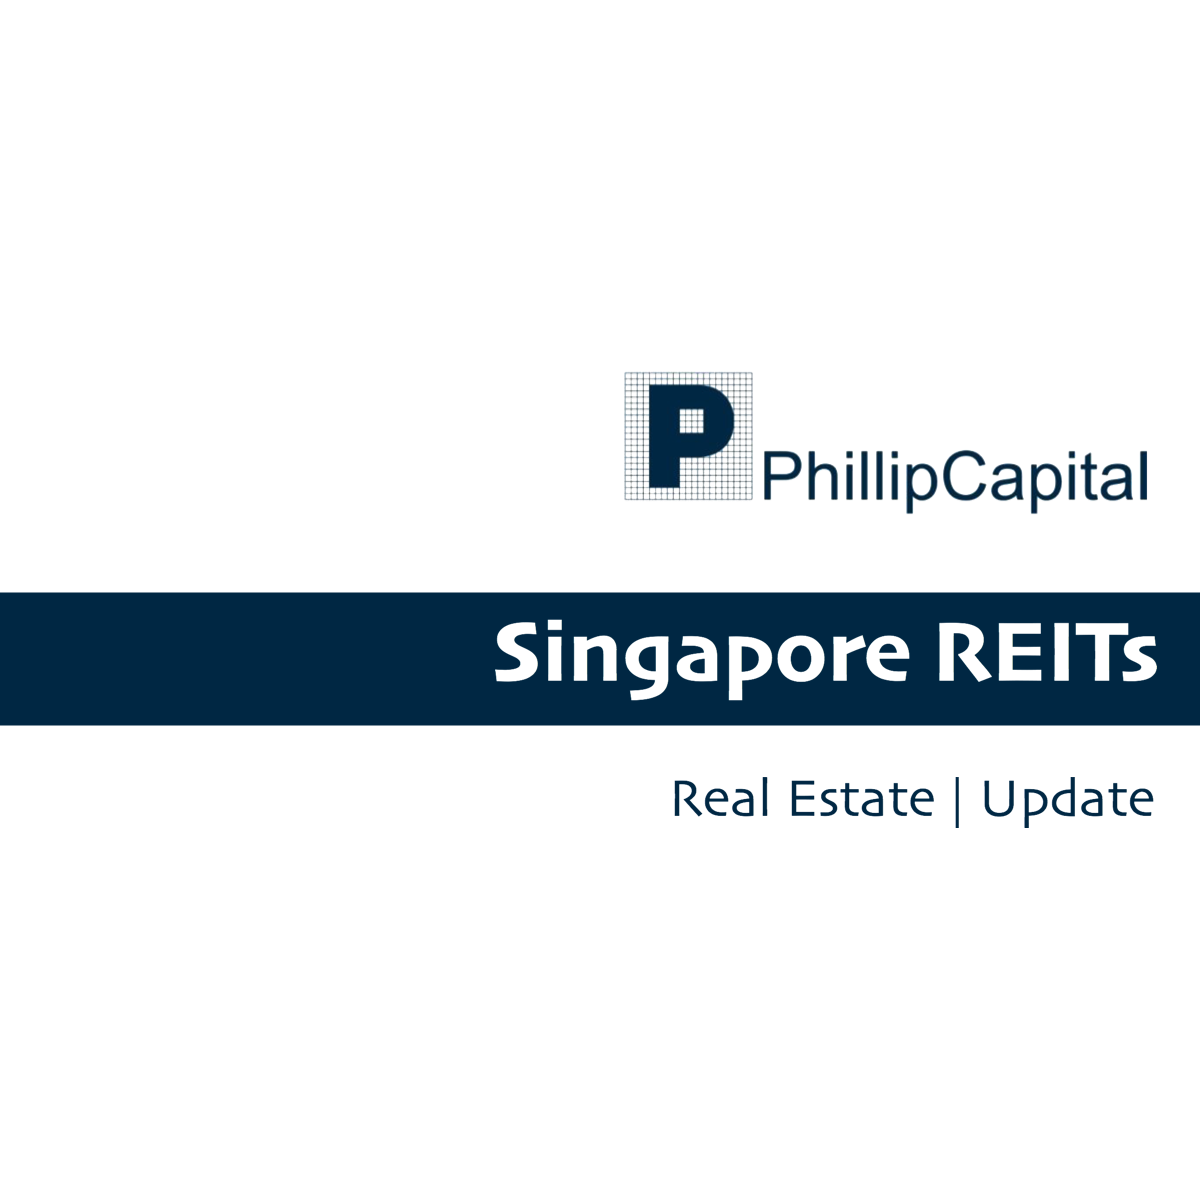 Singapore REITs - Phillip Securities 2017-02-06: Fed normalisation of interest rates in 2017/2018 to end 7 year outperformance of S-REITs